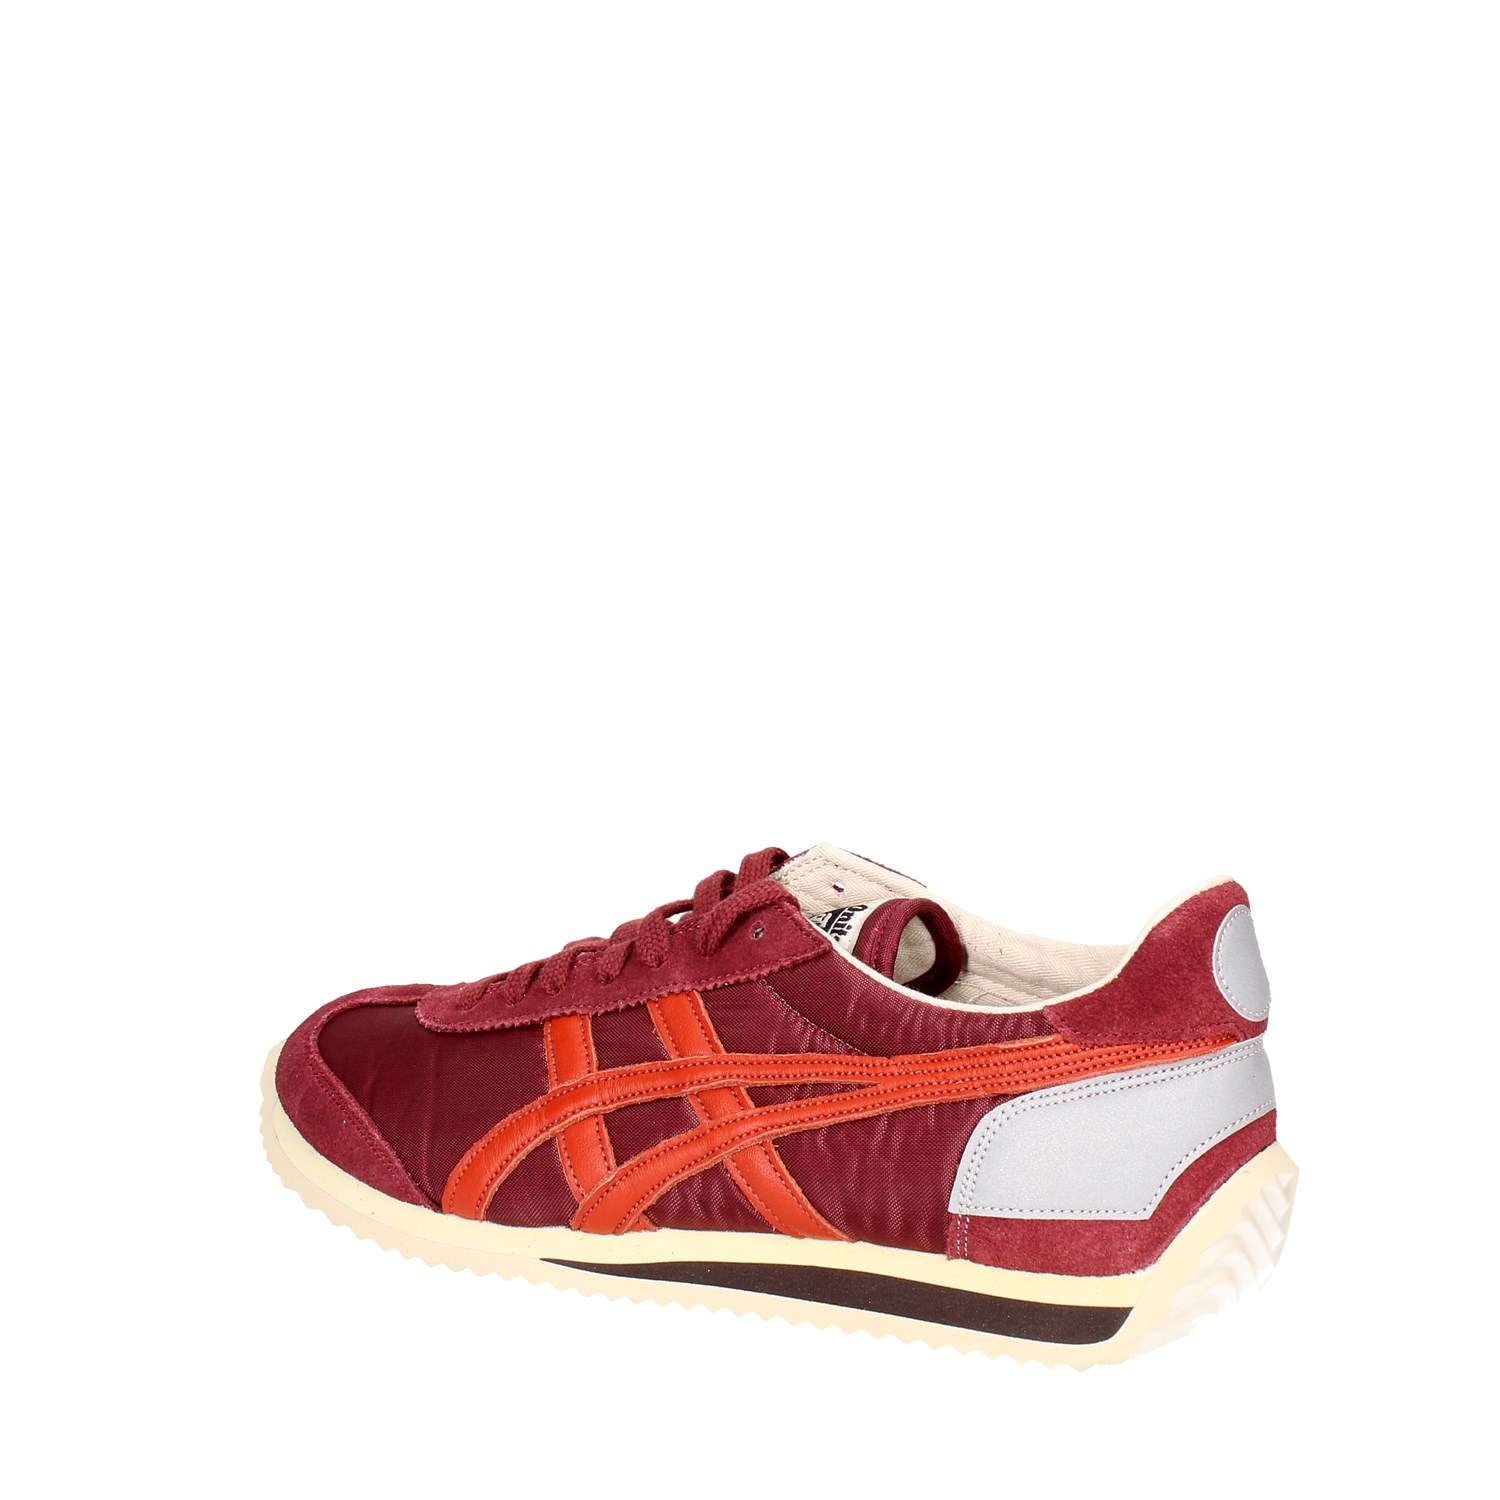 Niedrige Sneakers Damen Herbst/Winter Onitsuka Tiger D110N..2627 Herbst/Winter Damen 65db43